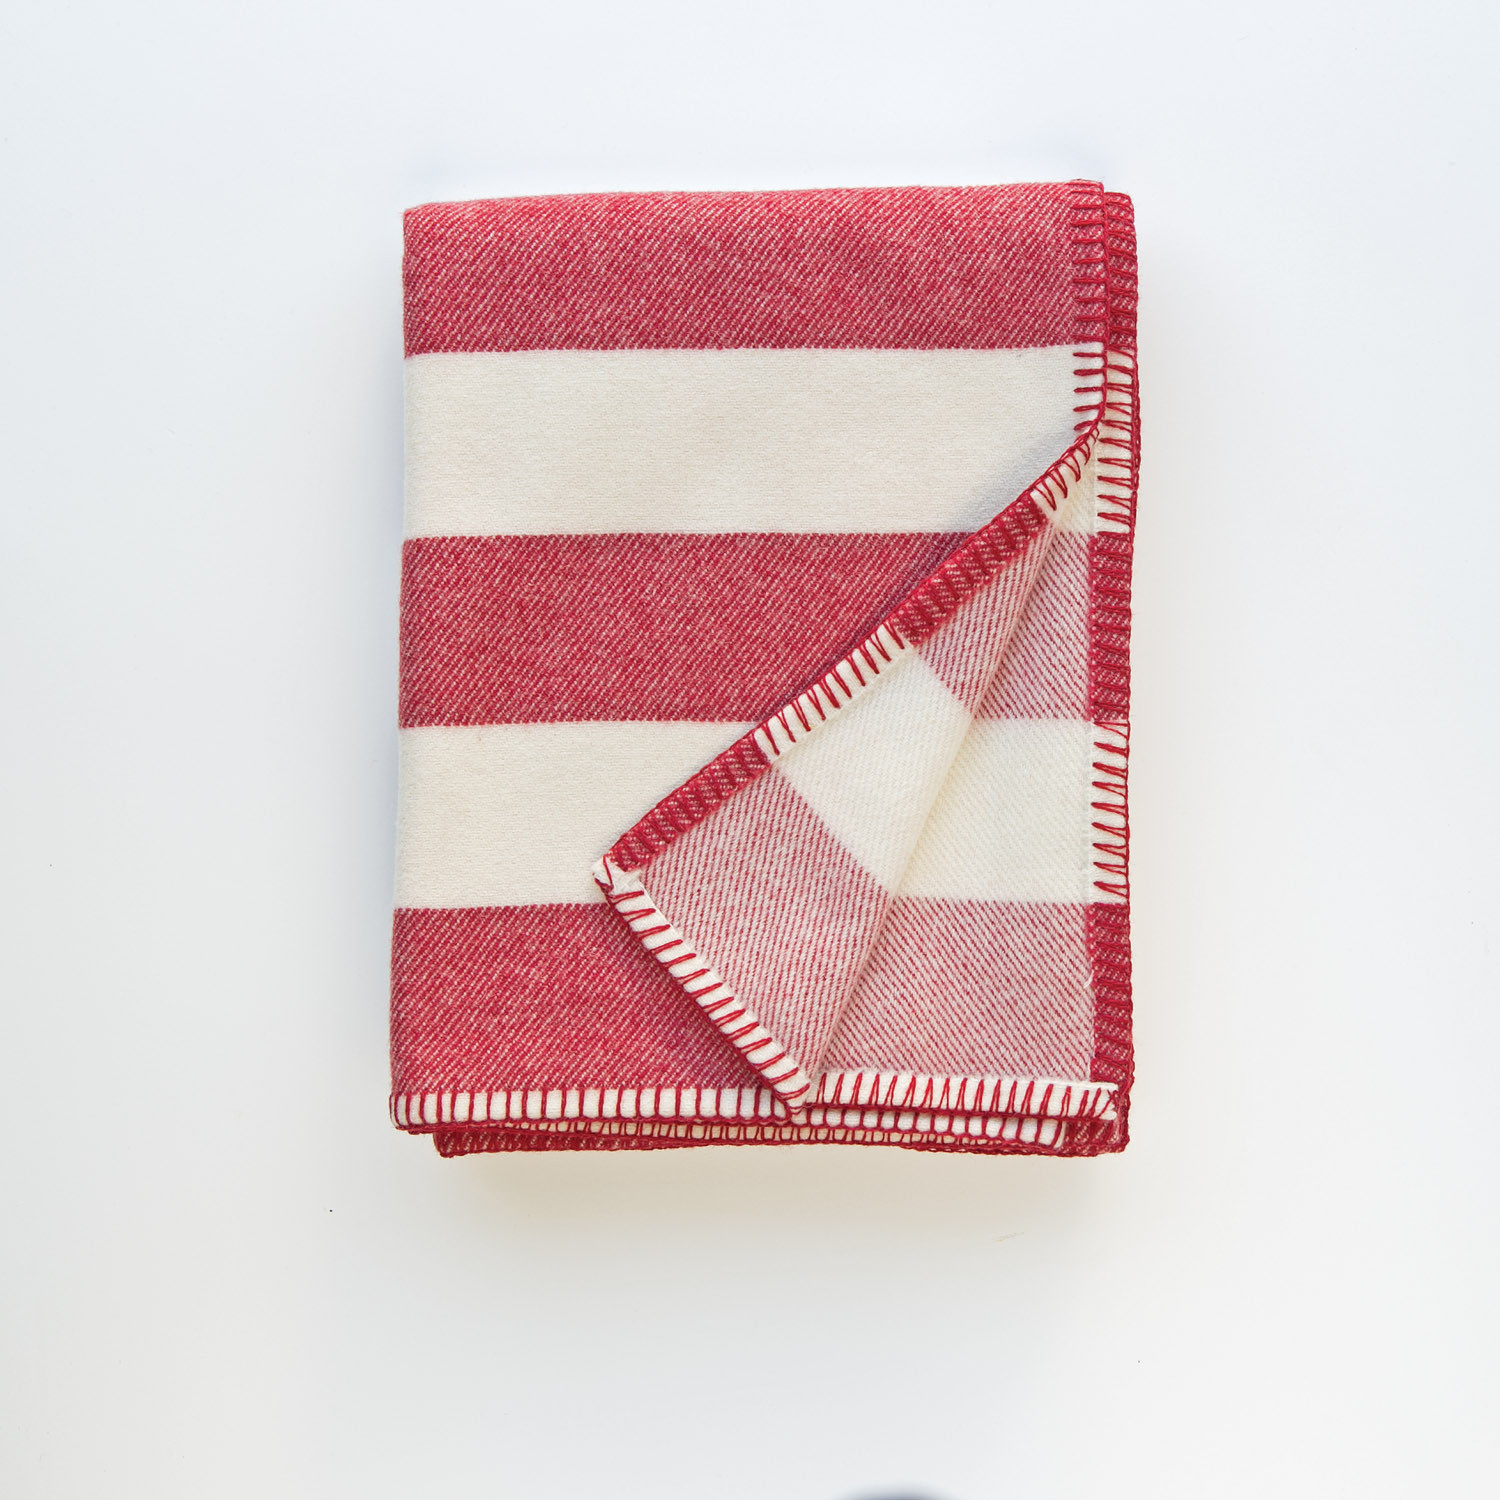 Broadstripe red blanket